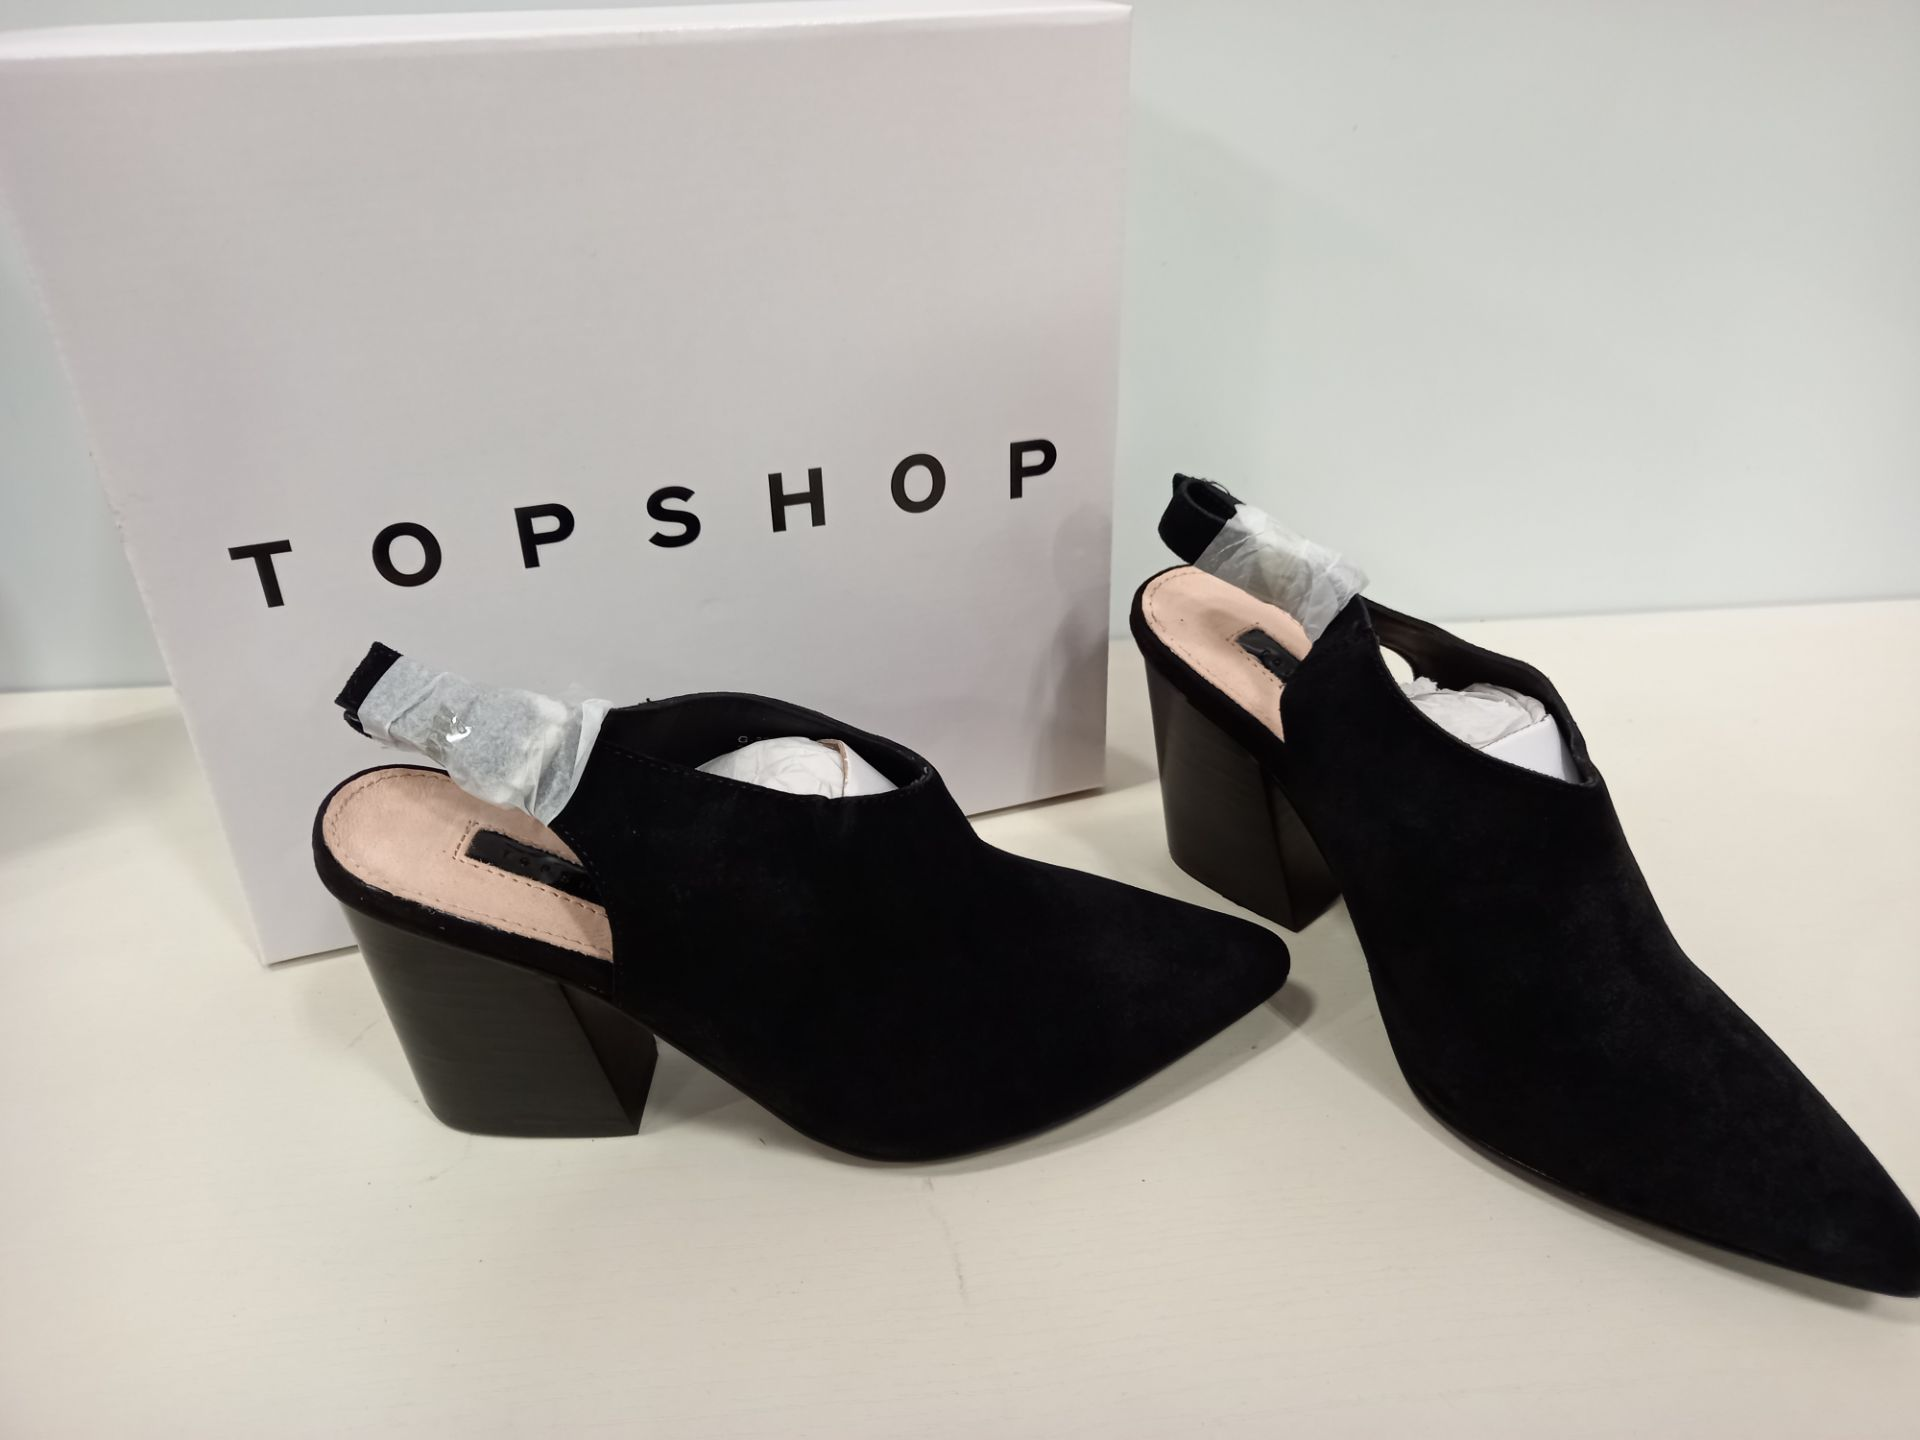 15 X BRAND NEW TOPSHOP GOJI BLACK SHOES UK SIZE 7, 3 AND 5 RRP £46.00 (TOTAL RRP £690.00)